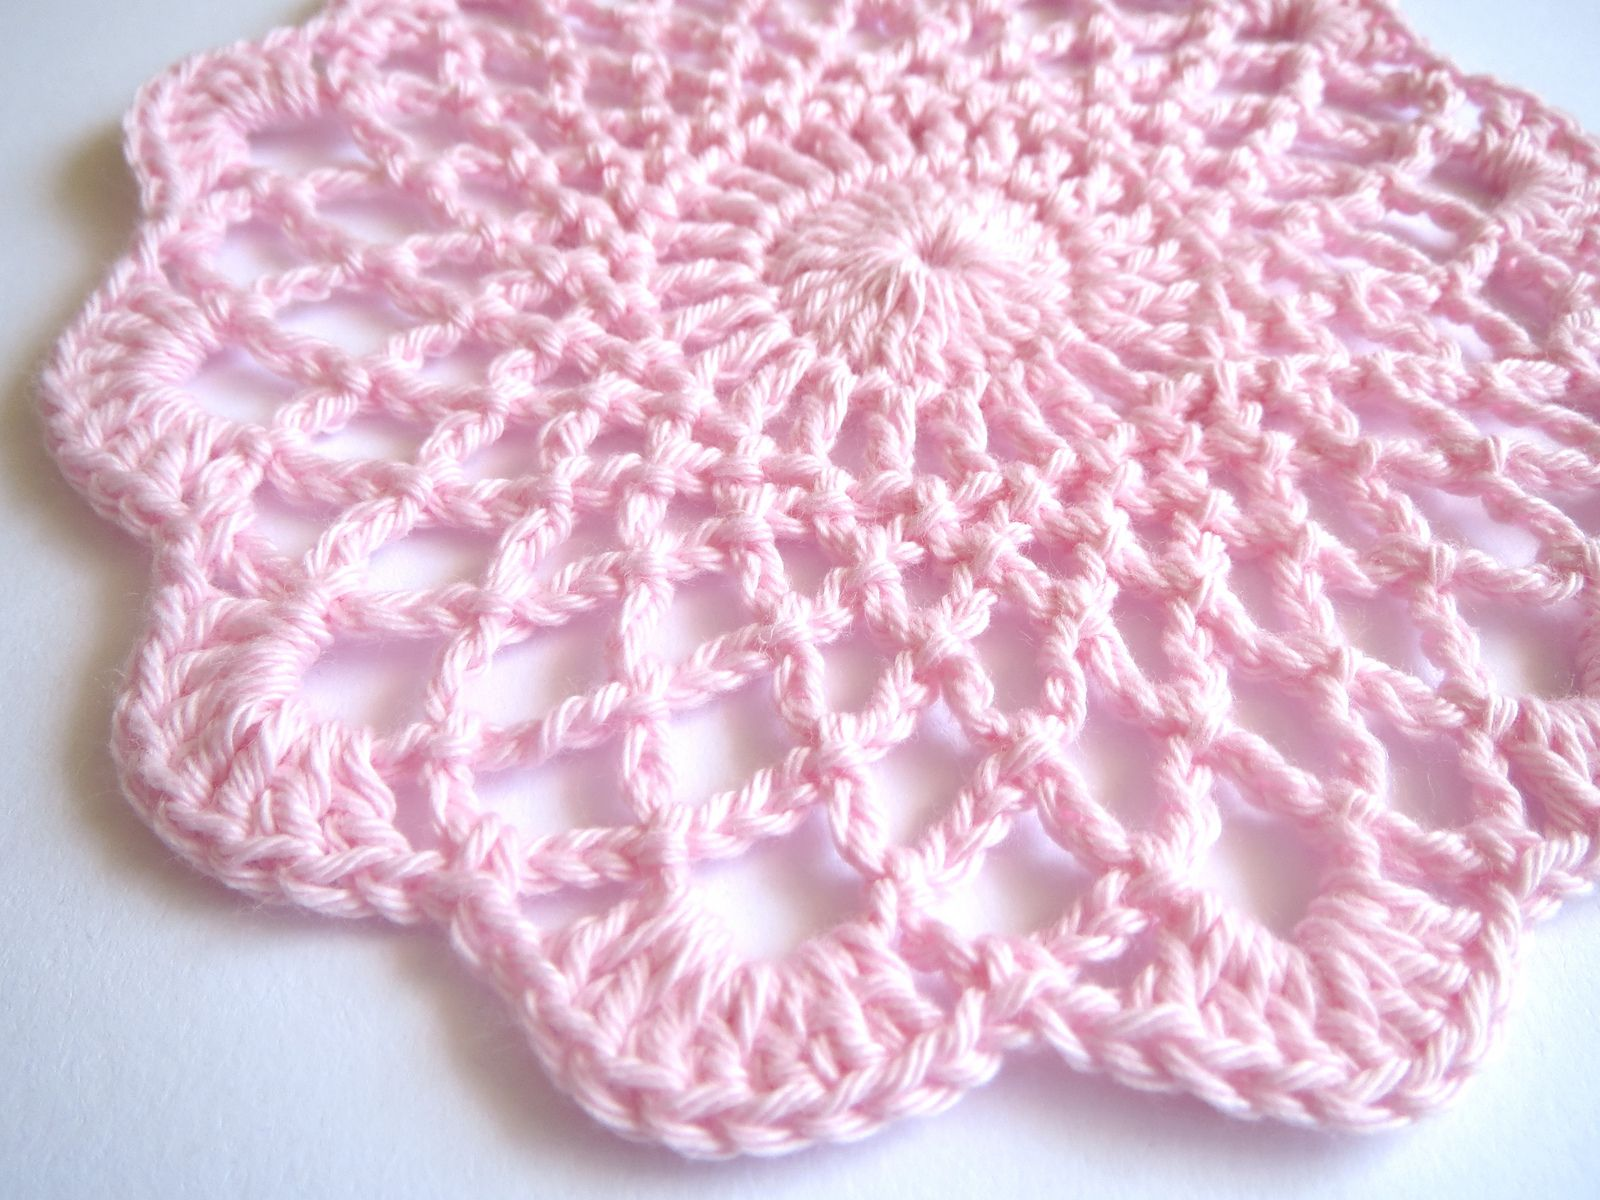 Ravelry: Shaded Pinks Doily by Maggie Weldon | crochet | Pinterest